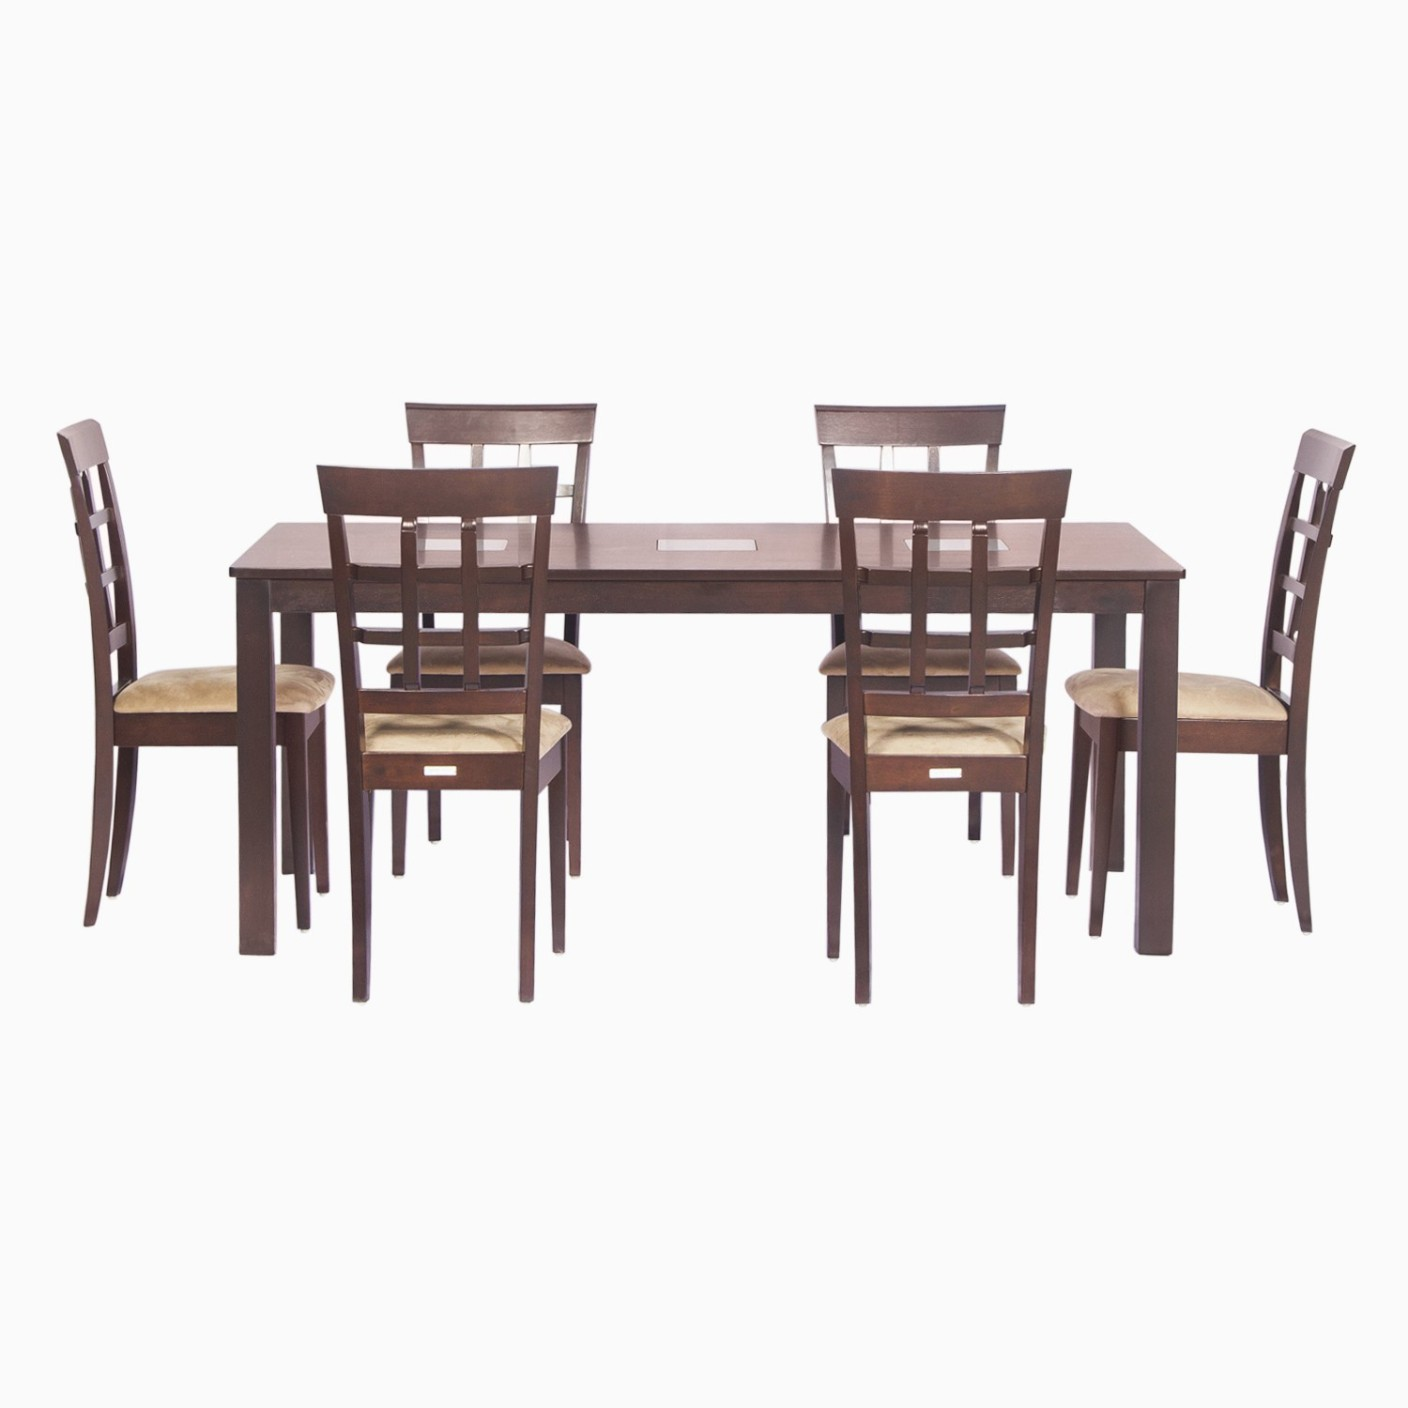 Godrej Interio Leo Lisa Dining Set Solid Wood 6 Seater Dining Set Price In India Buy Godrej